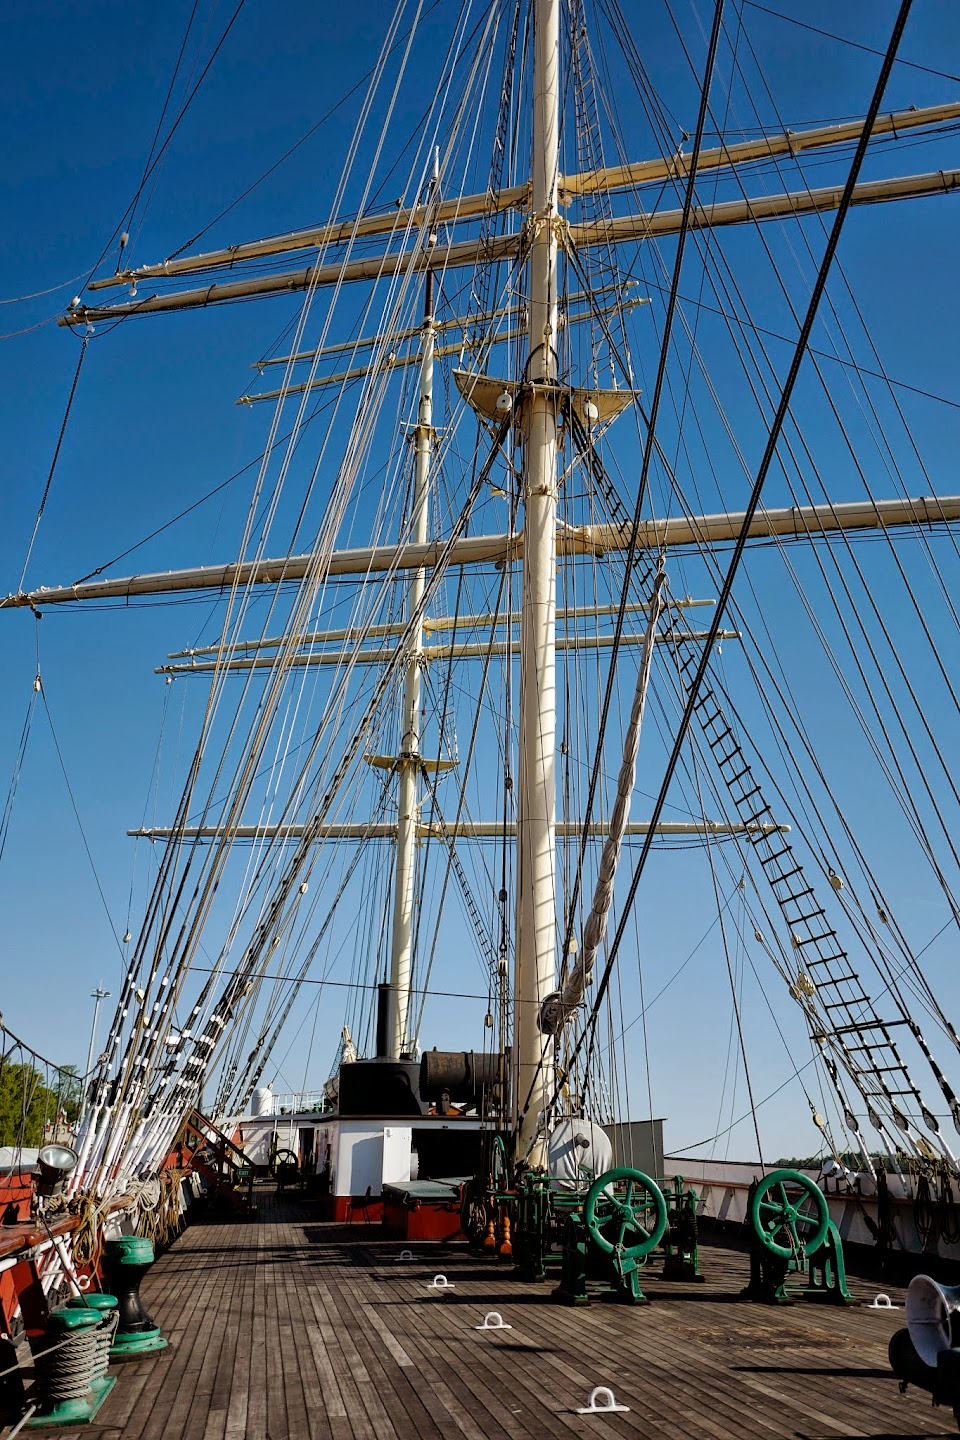 2015-06-28-goh-visit-to-aland-maritime-museum-and-pommern - L1020658.jpg